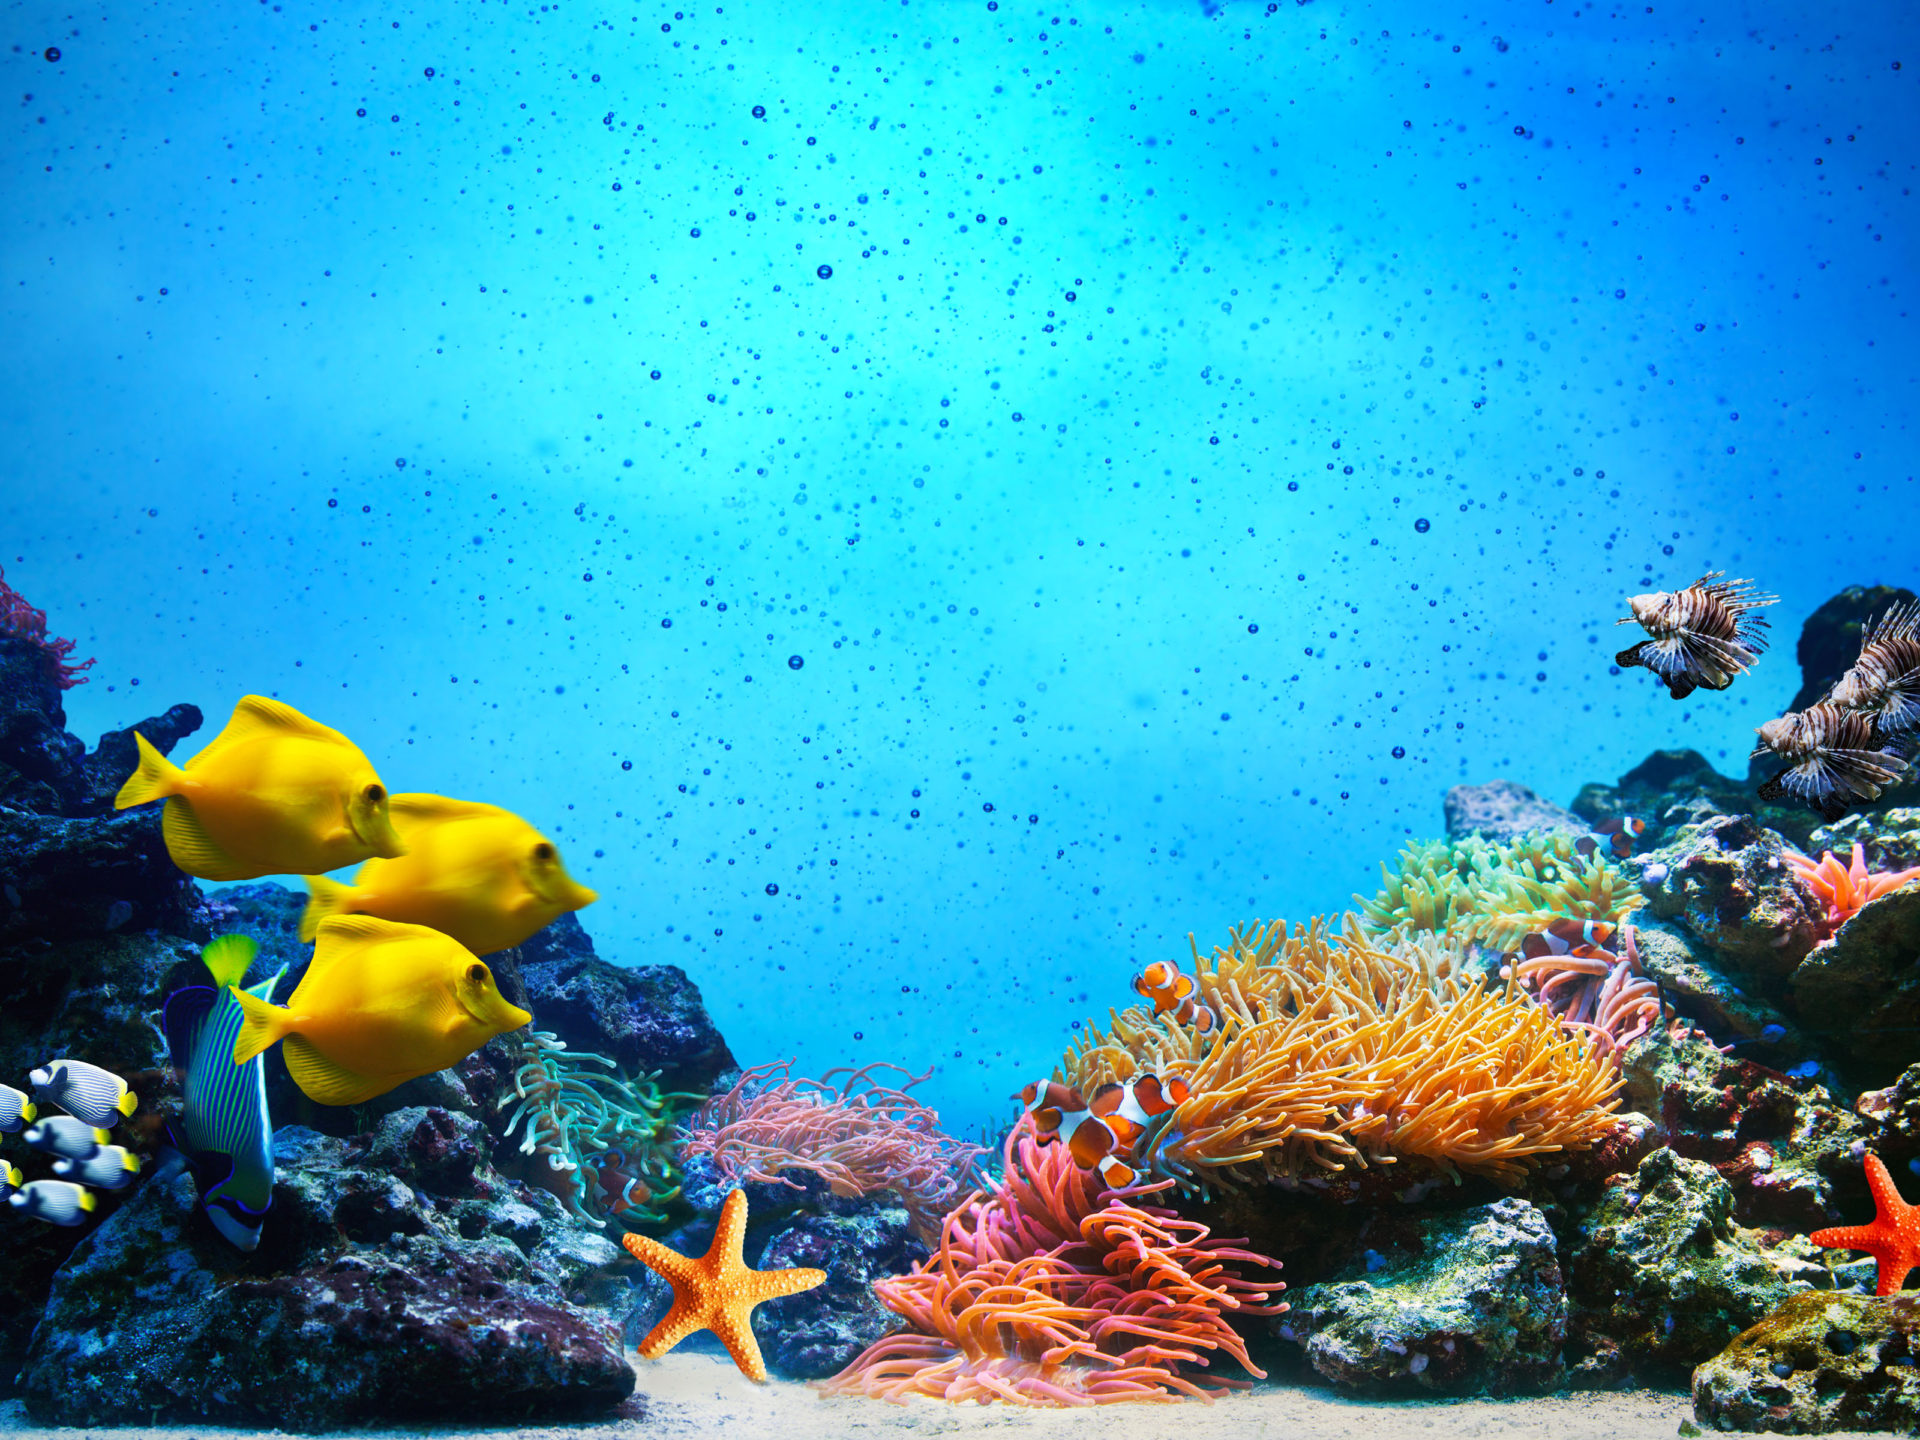 How To Use Gif As Wallpaper Iphone X Underwater Scene Coral Reef Fish Groups In Clear Ocean